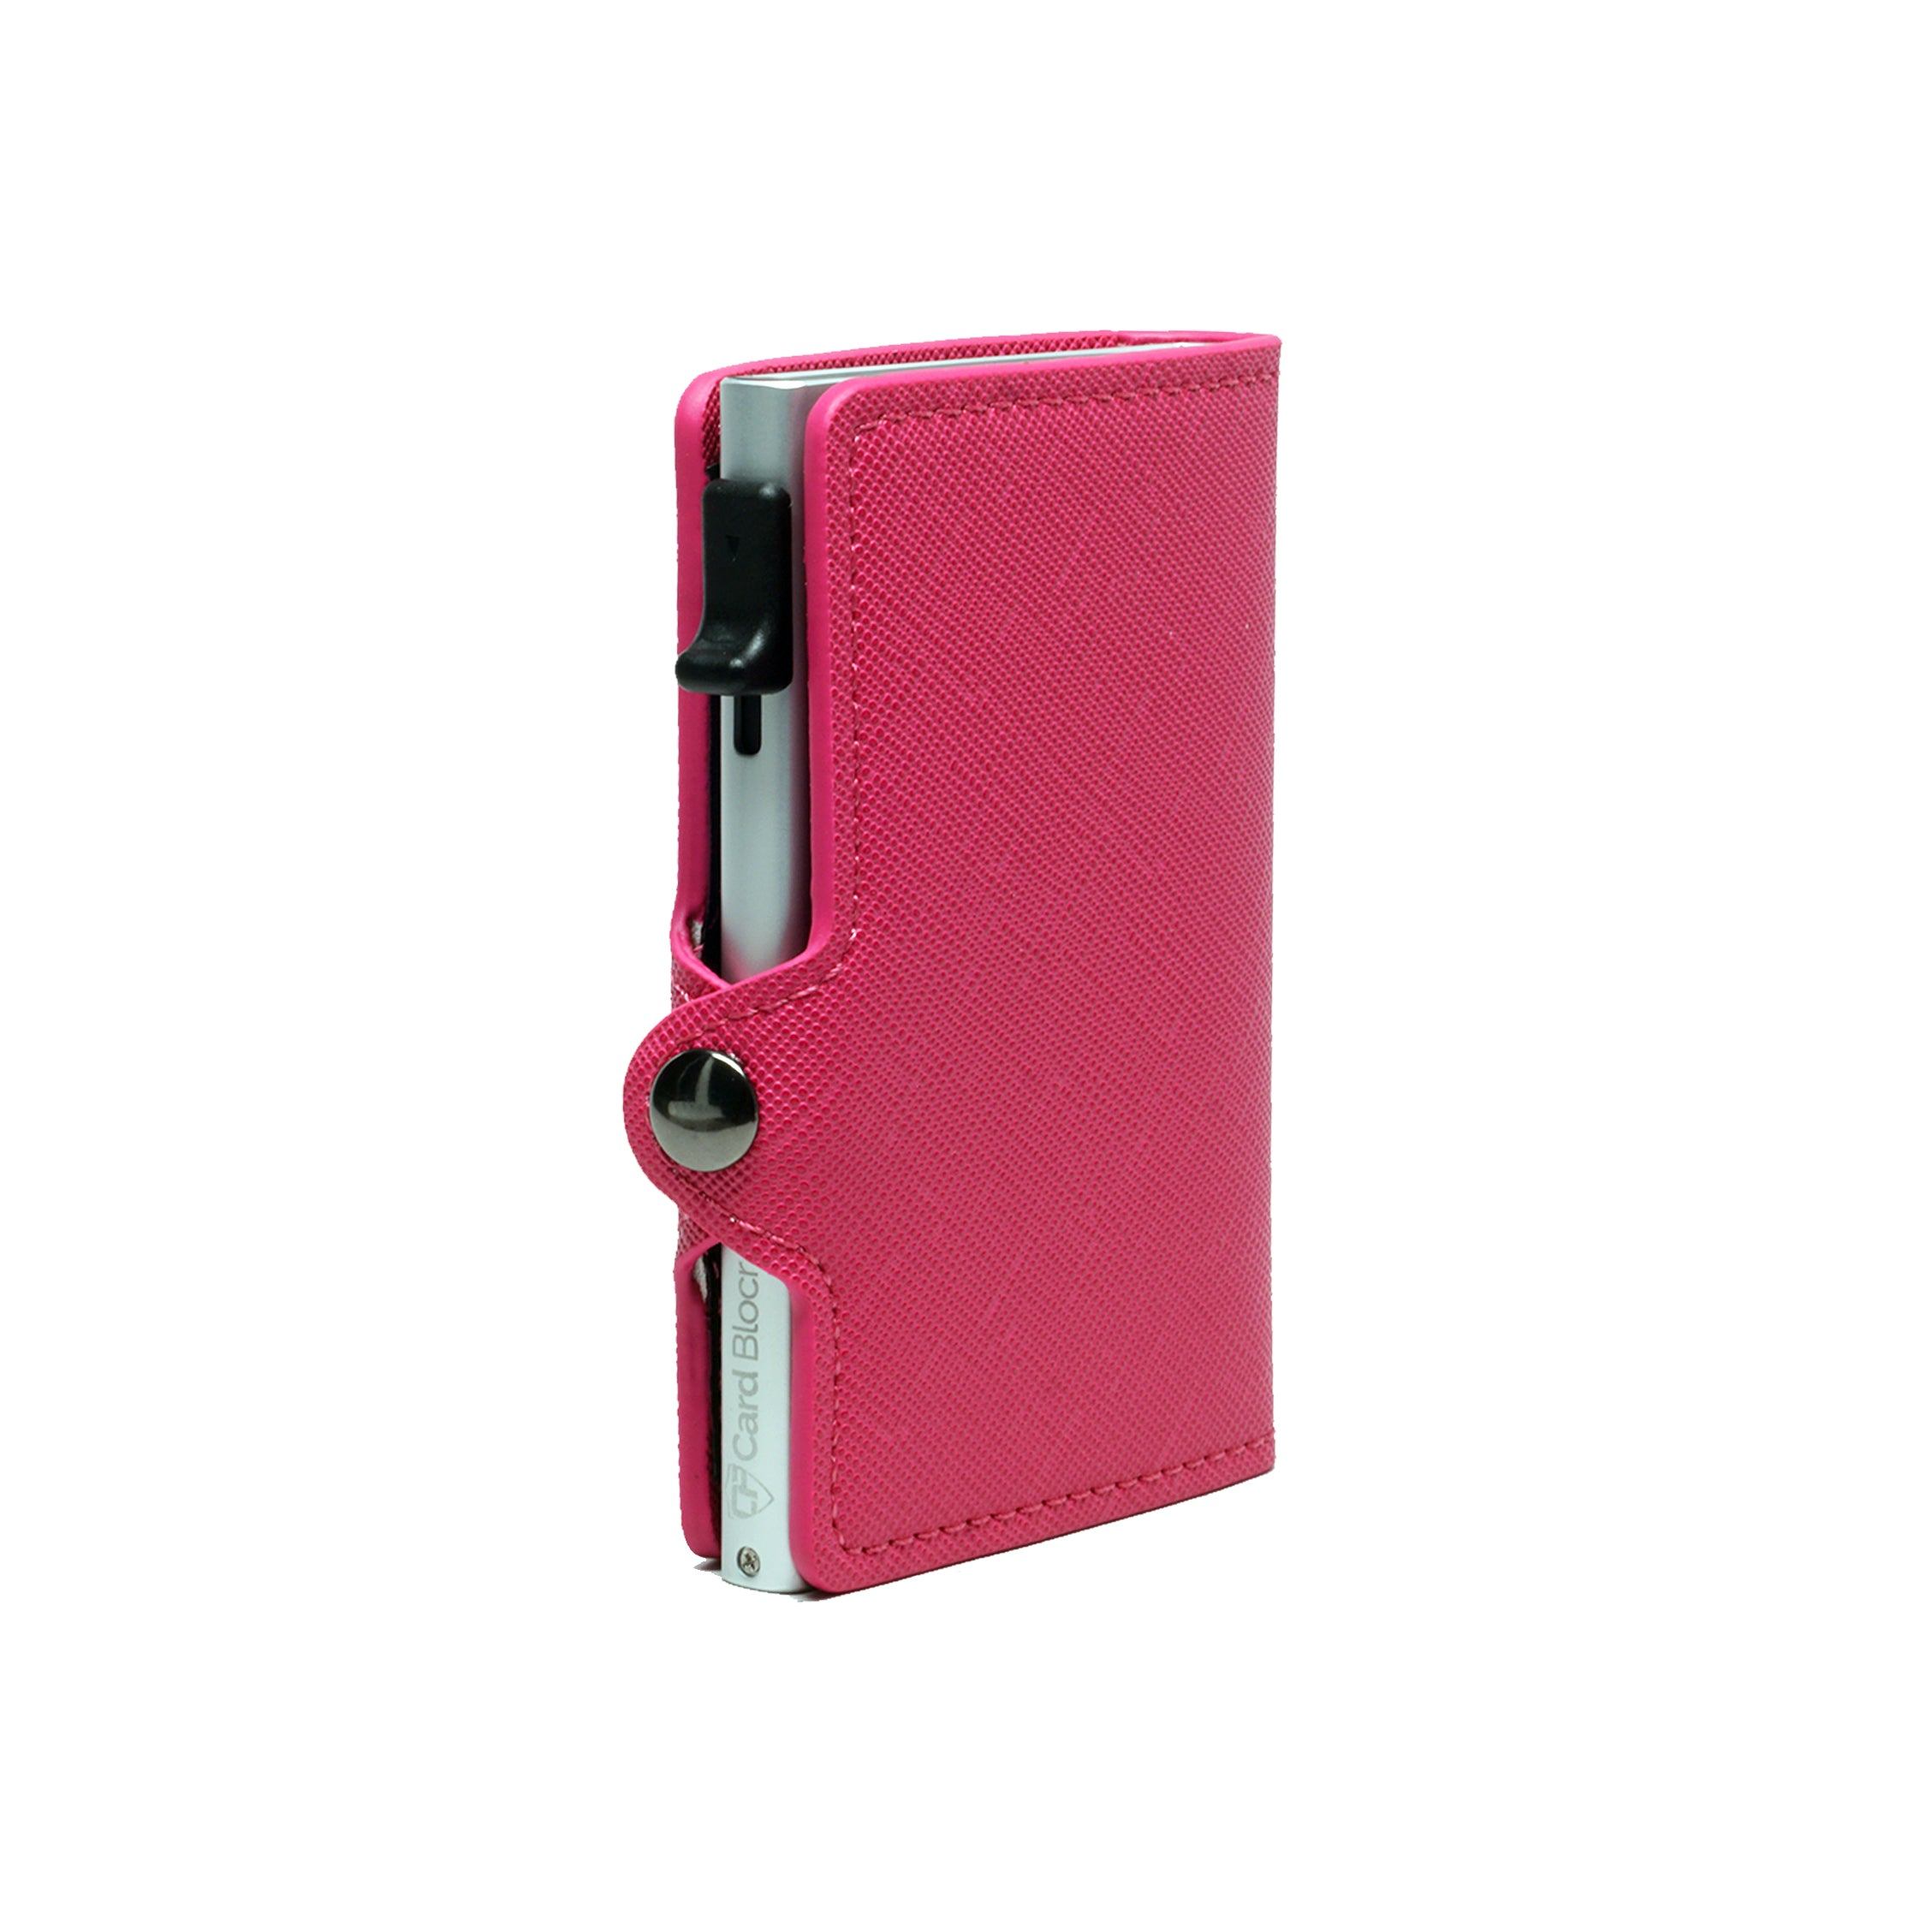 Card Blocr Credit Card Wallet Saffiano Pink PU Leather and Silver Metal Minimalist Wallet